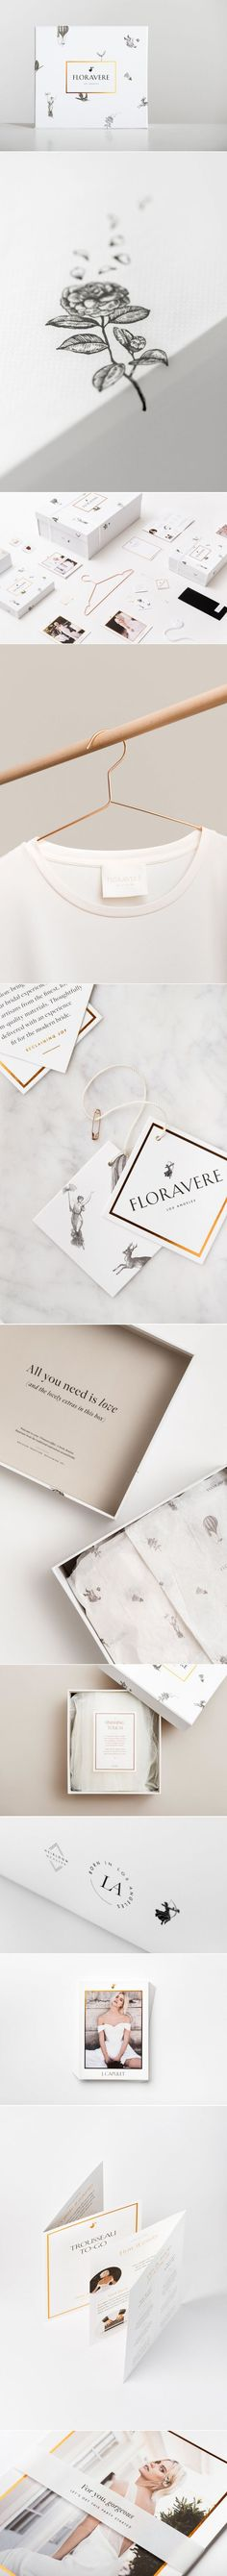 Floravere Wedding Gowns — The Dieline - Branding & Packaging Design